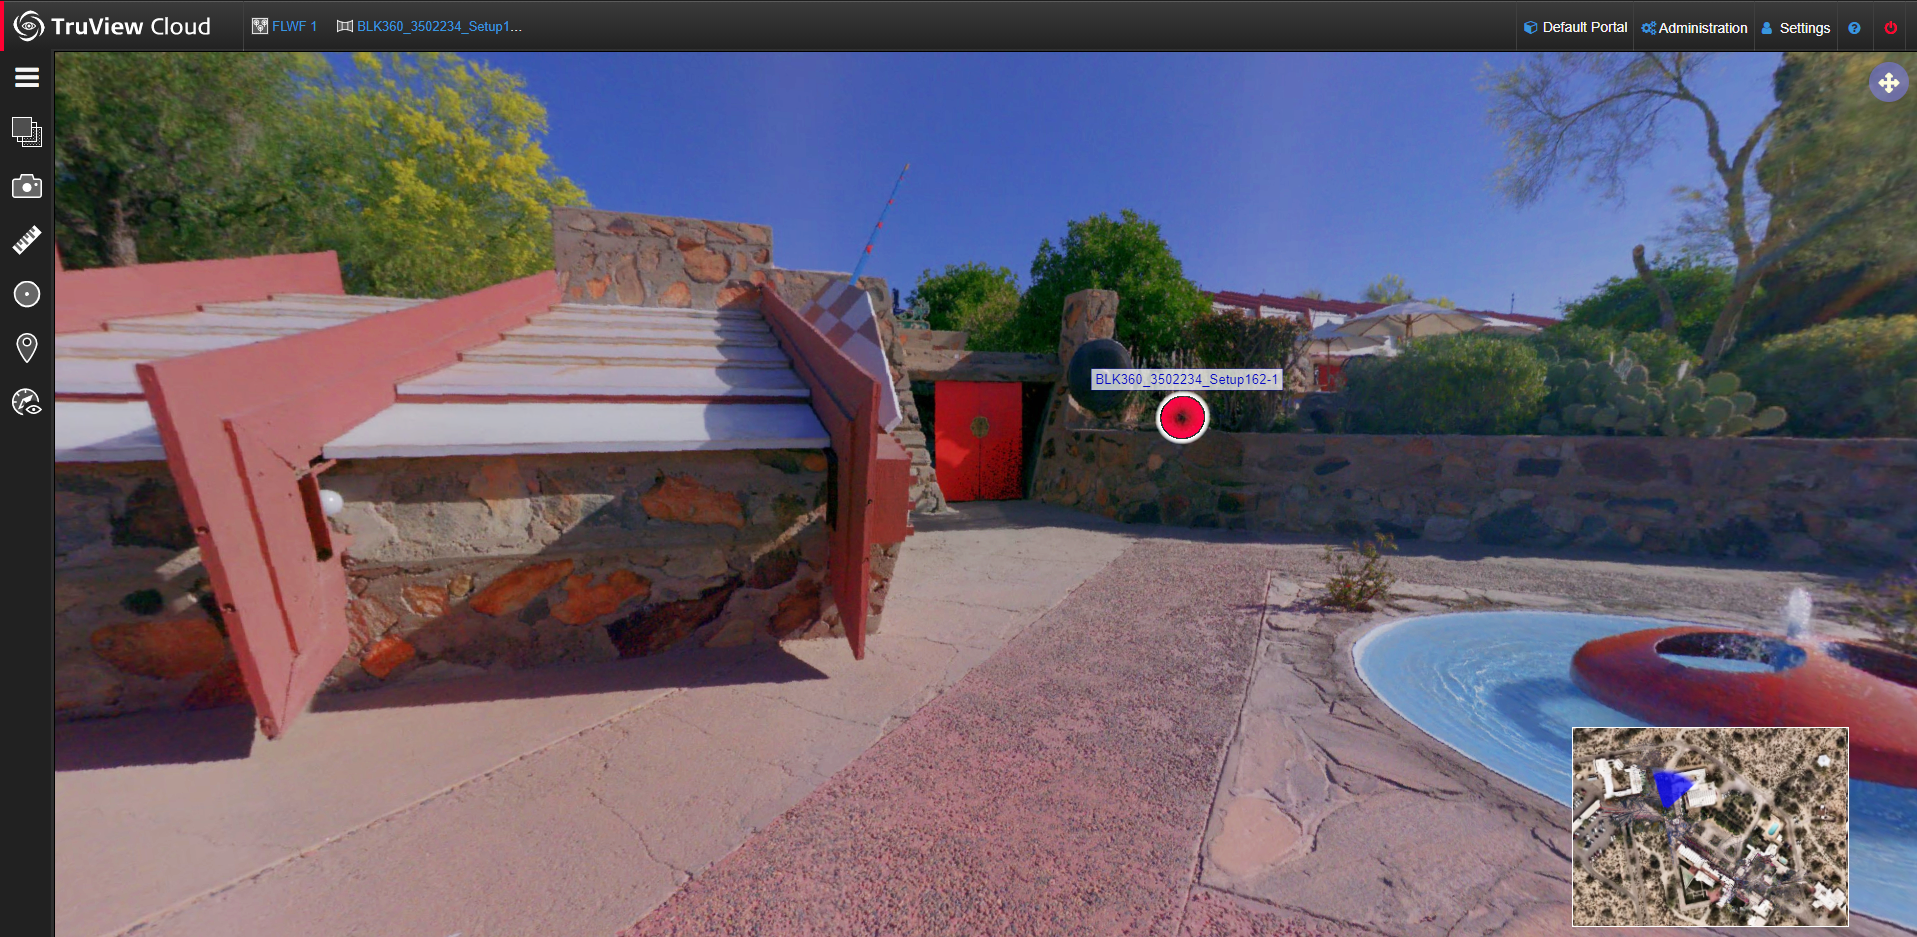 Taliesin West in Leica TruView